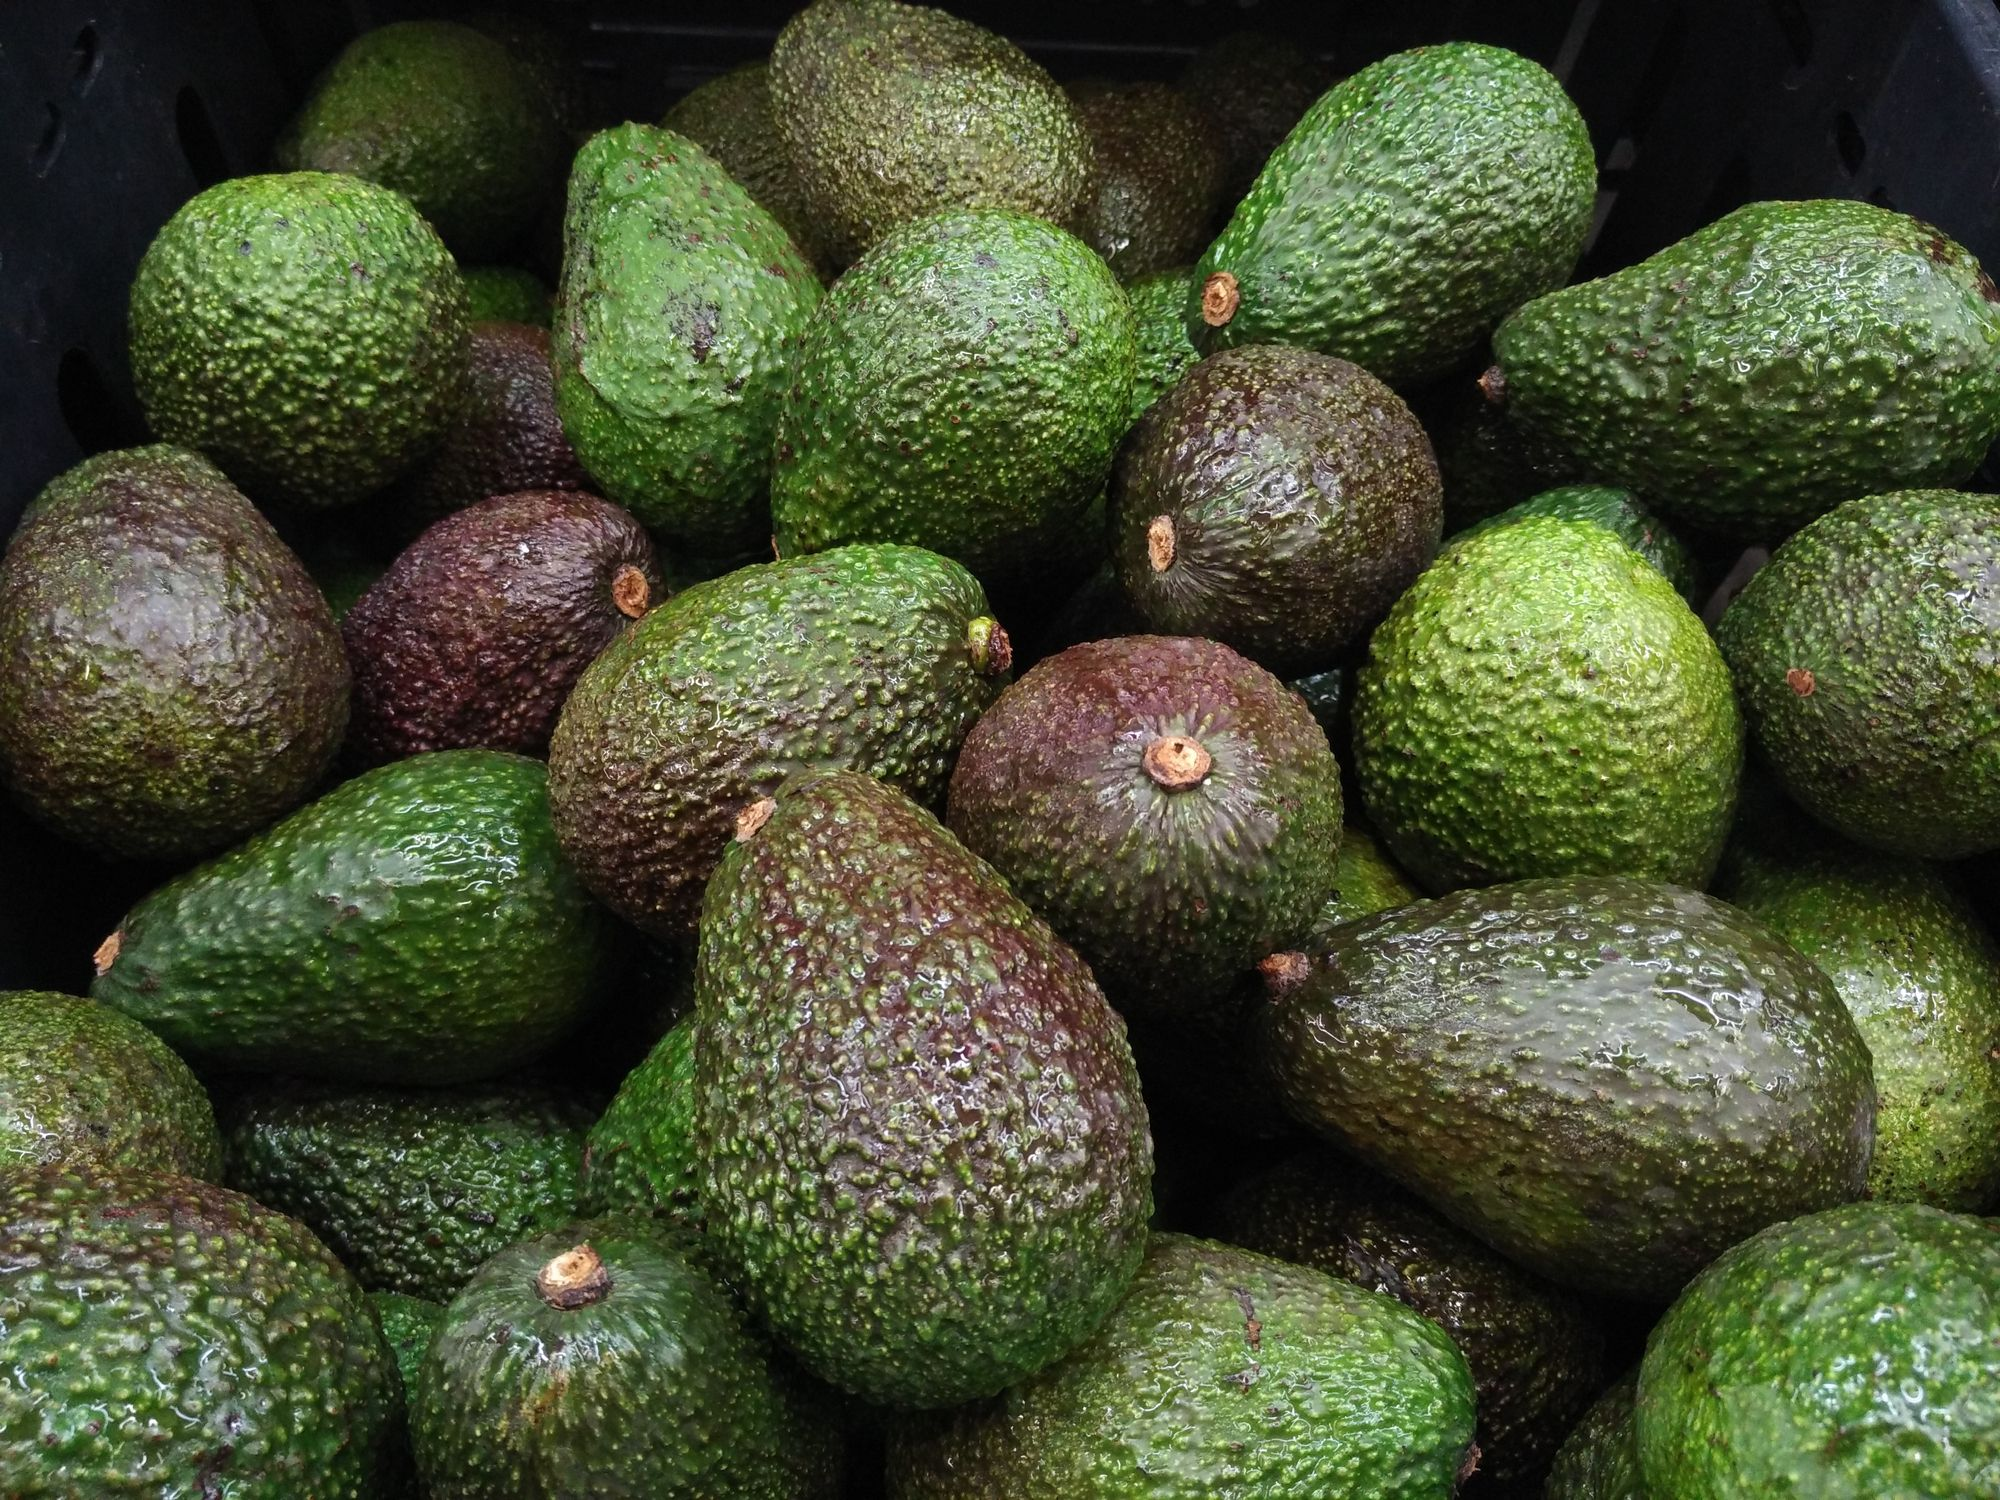 U.S. Avocado Supplies Would Run Out In Less Than A Month If The Mexico Border Closes This Week